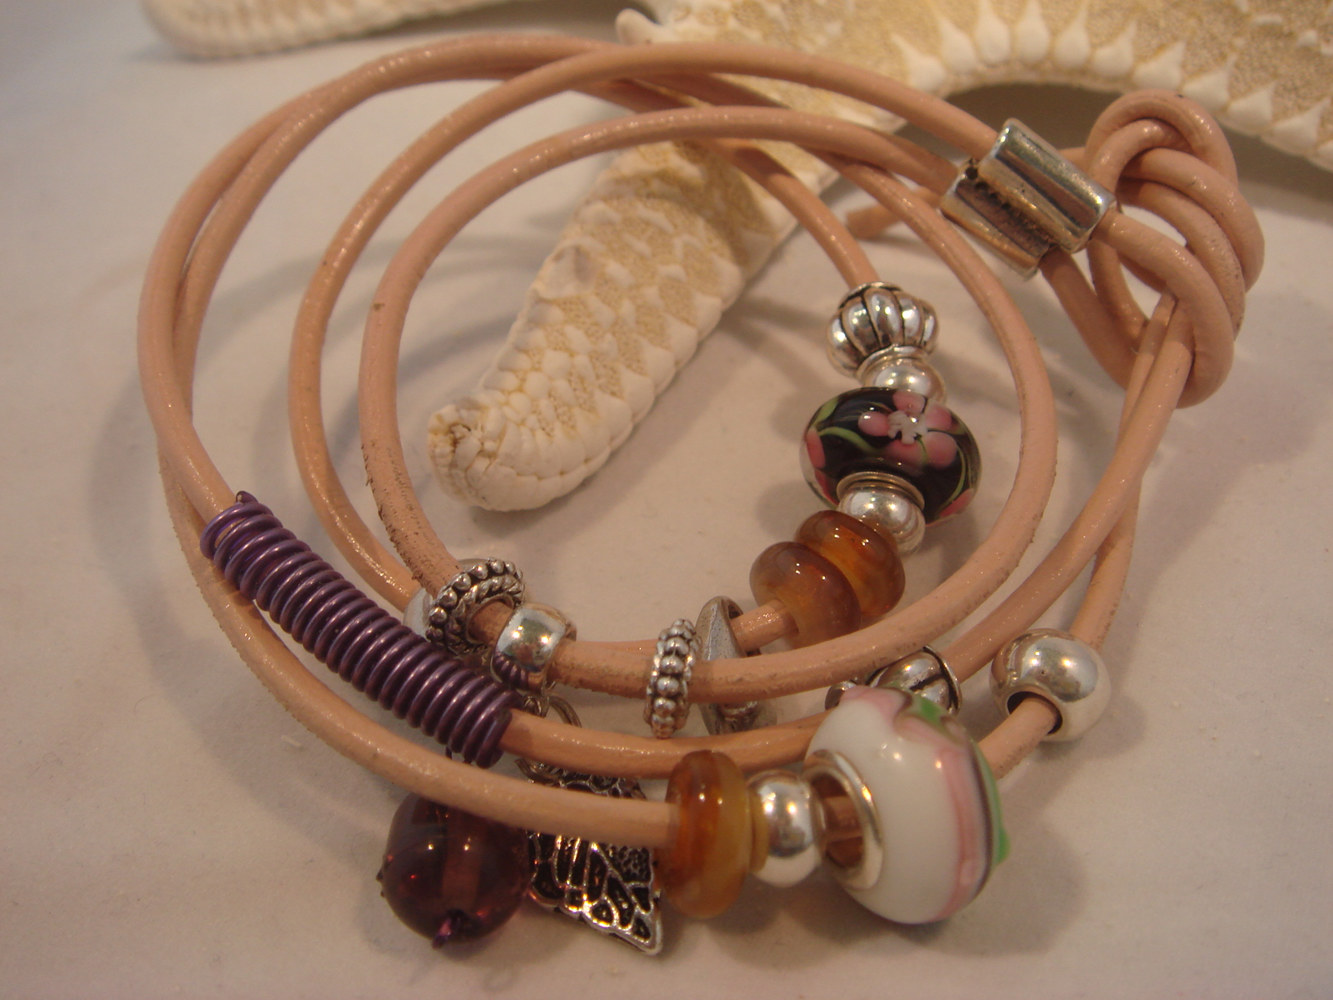 Oil painting Peach Leather Wrap and Knot Bead Charm Bracelet by Renee Hennessy